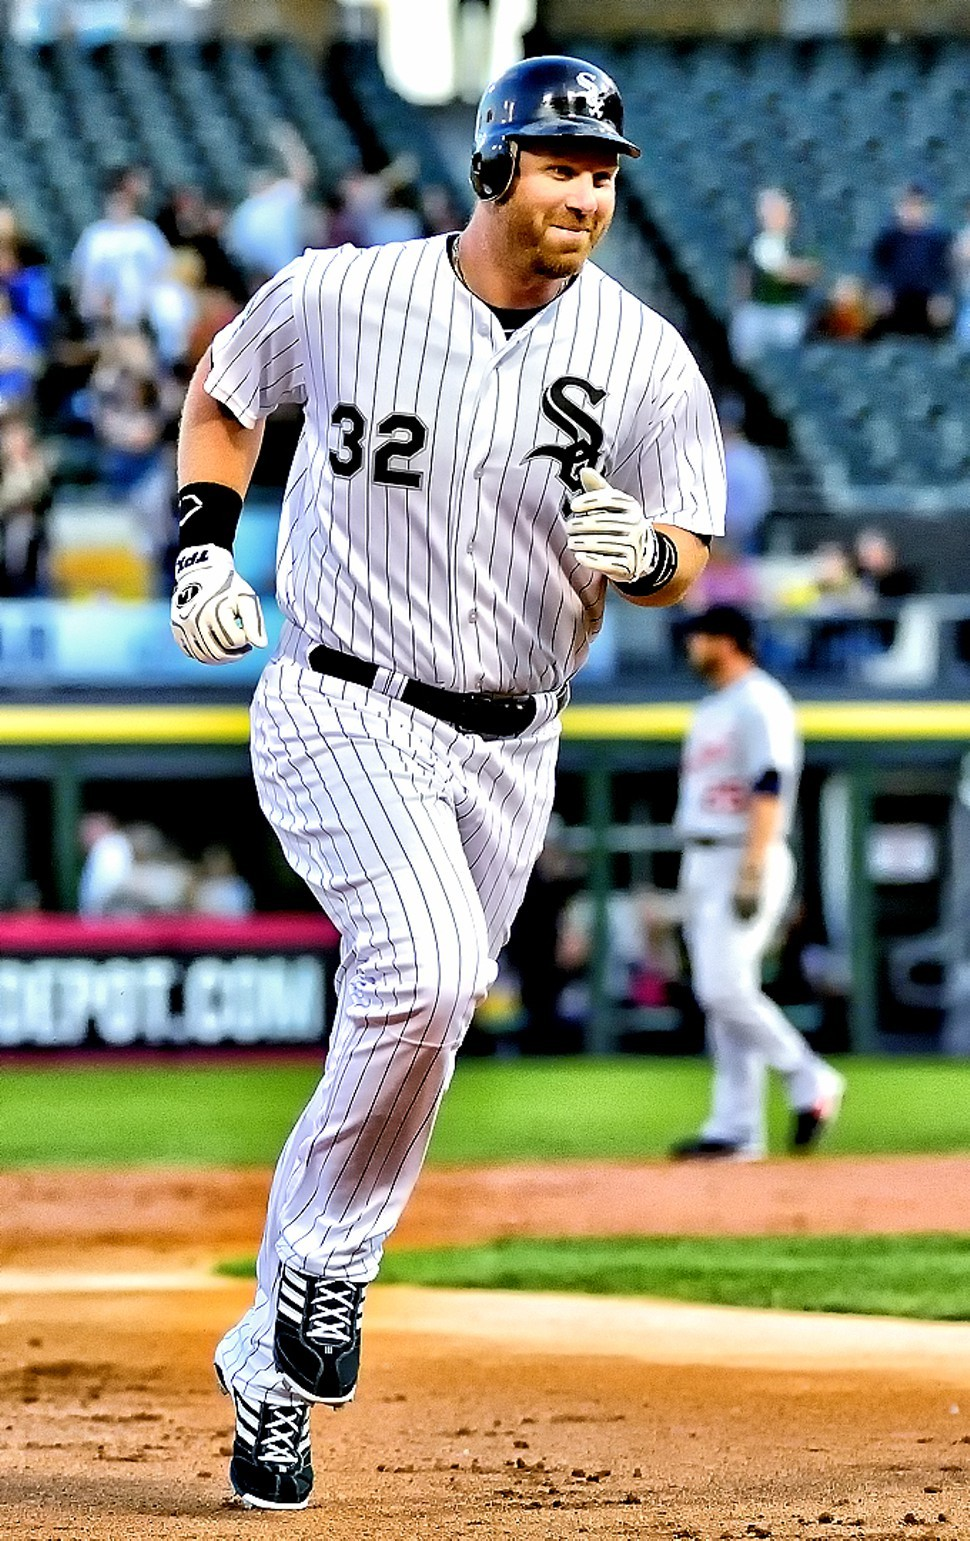 Adam Dunn: Theres nothing to smile about until you start beating your division rivals consistently.